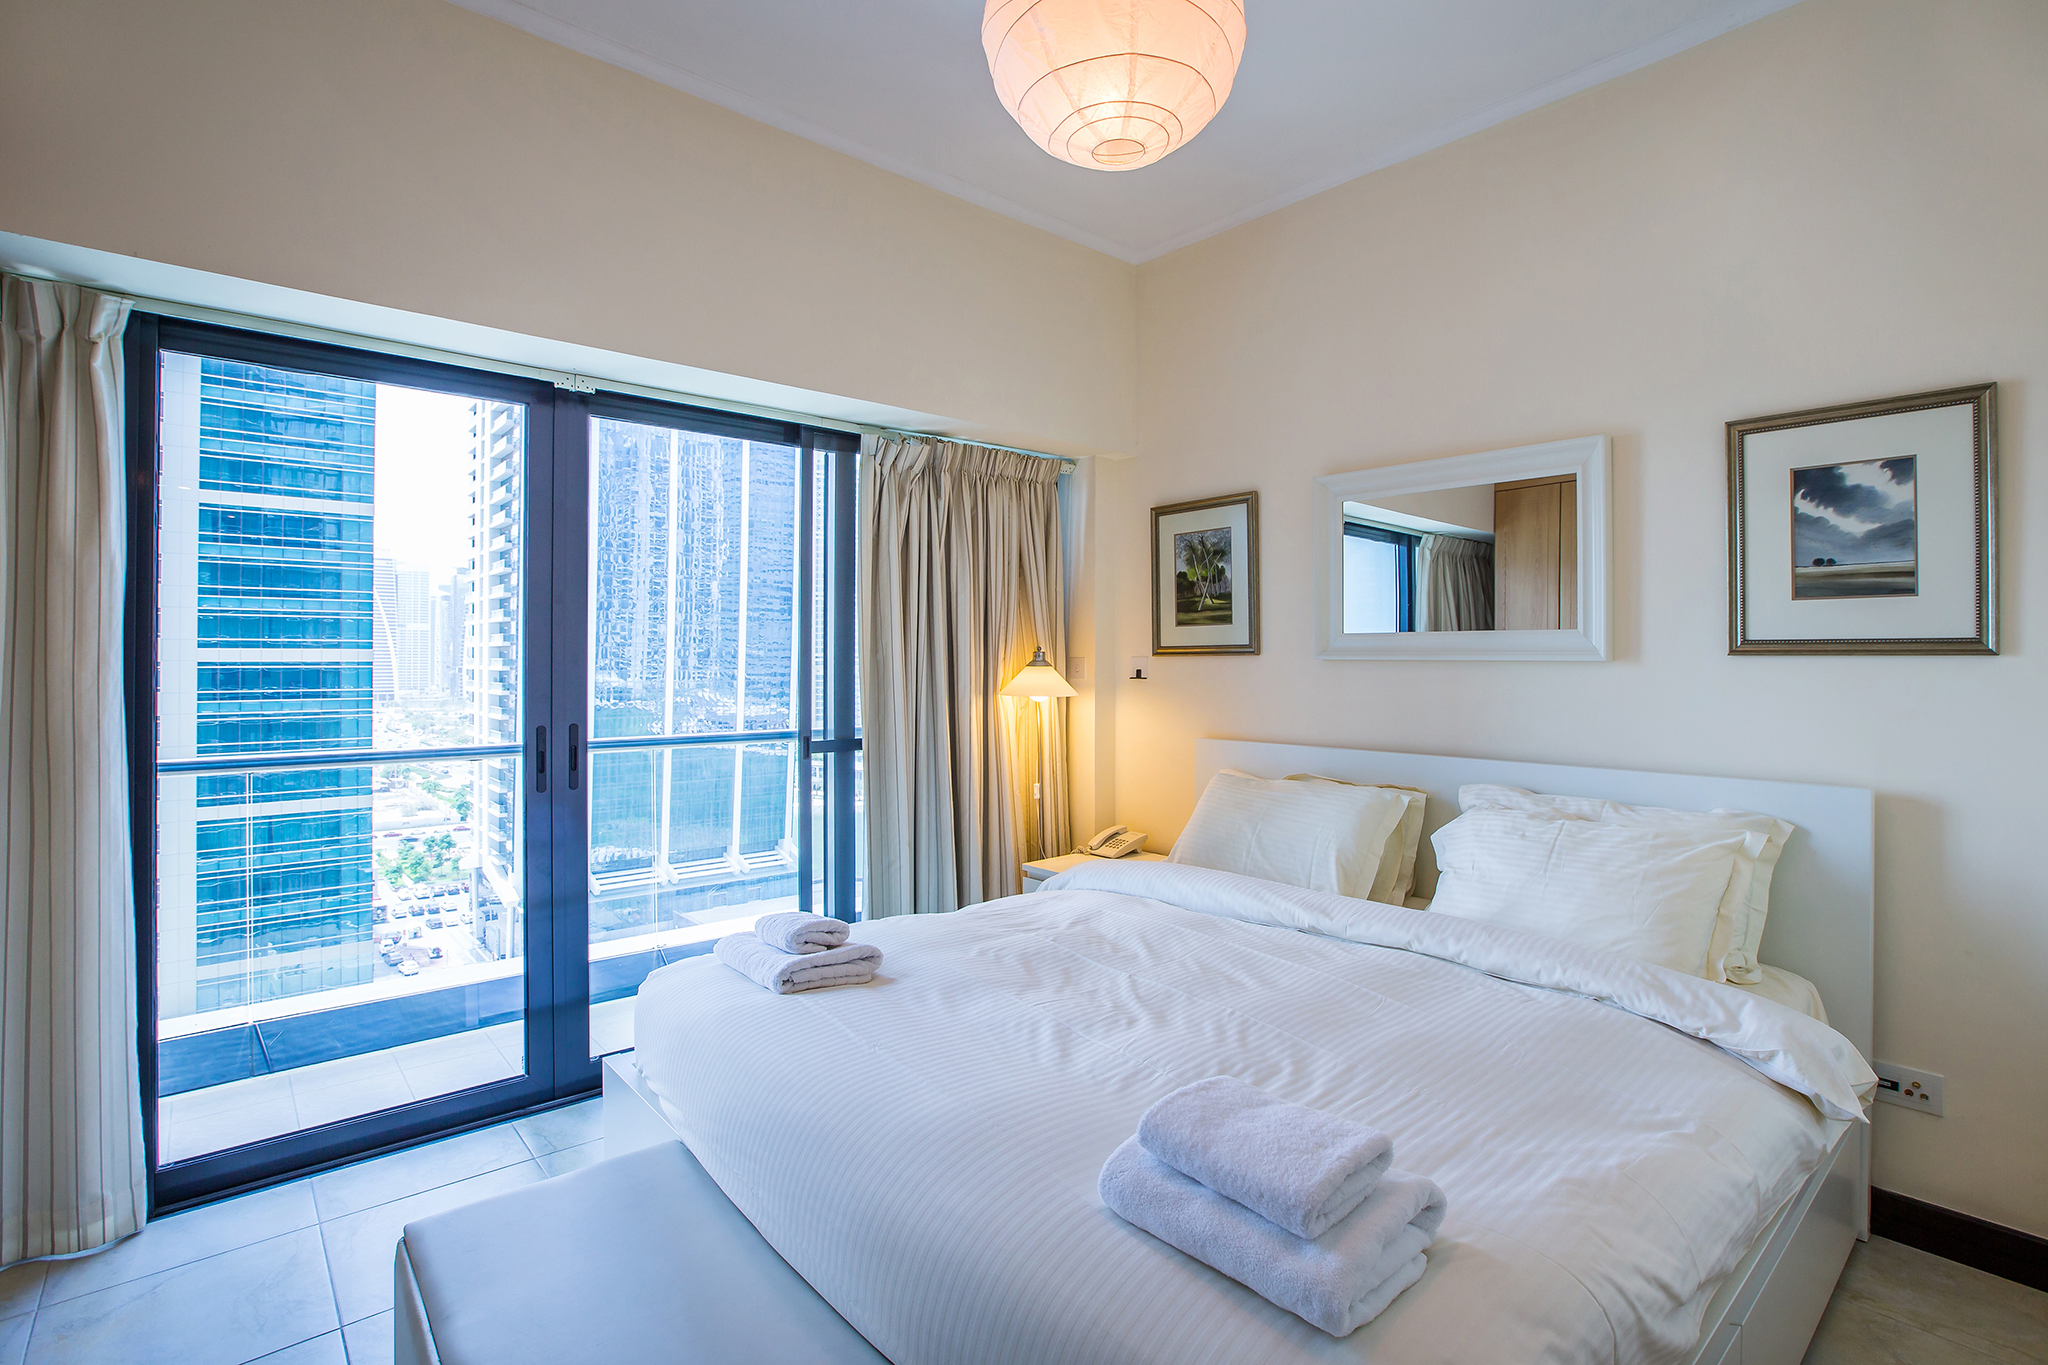 Extremely comfortable king size bed, partitioned from the rest of the studio for privacy with a majestic lake view.